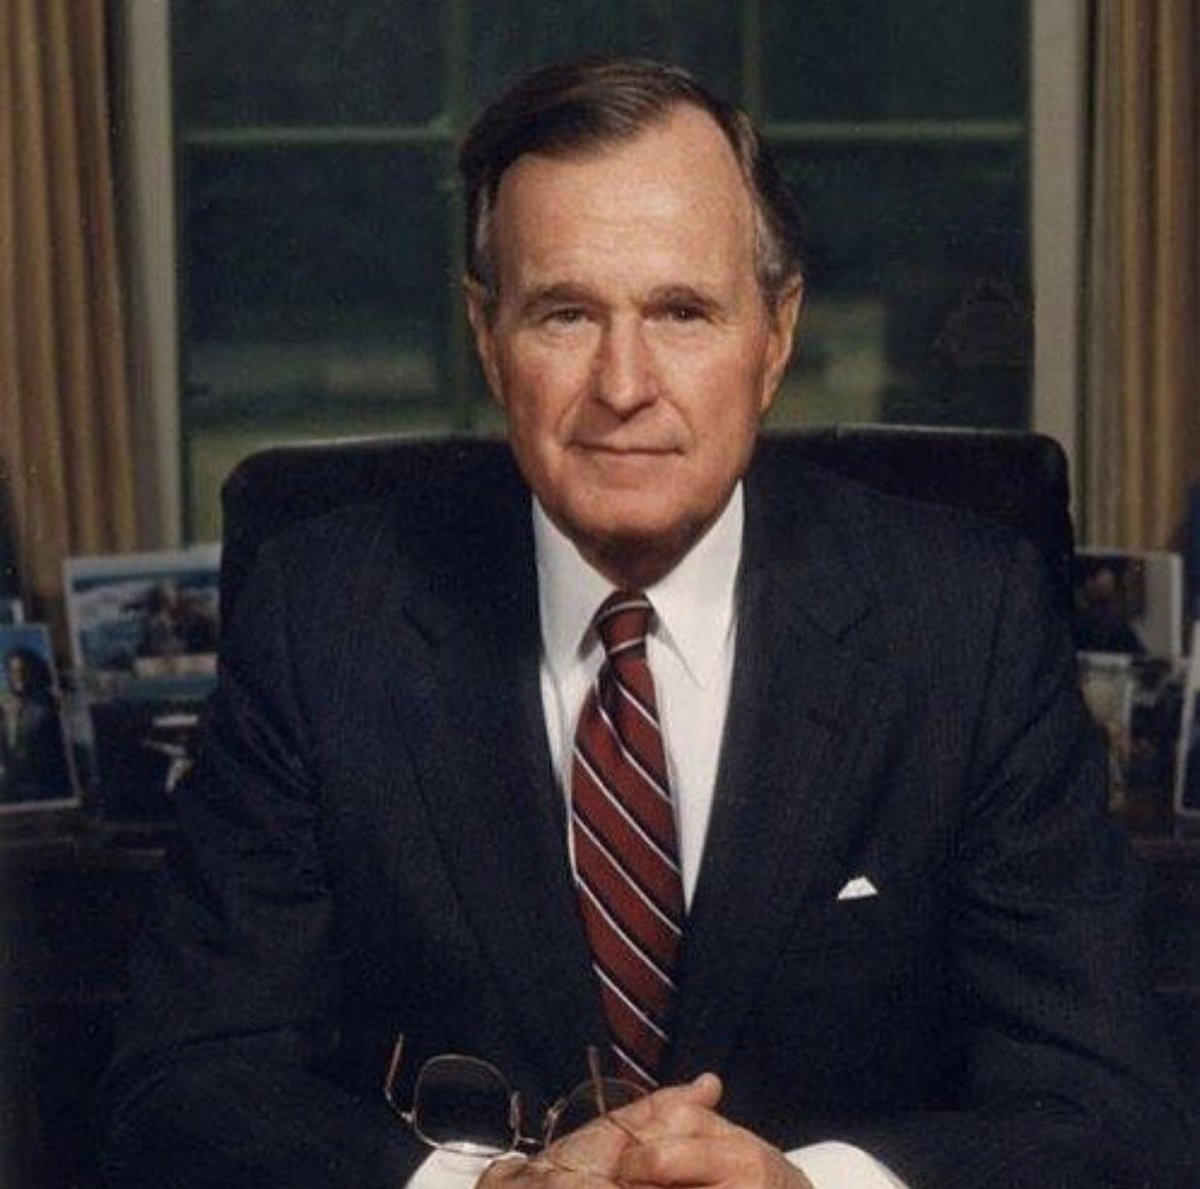 """There could be no definition of a successful life that does not include service to others."" - George H.W. Bush, 41st President of the United States #Honoring41"